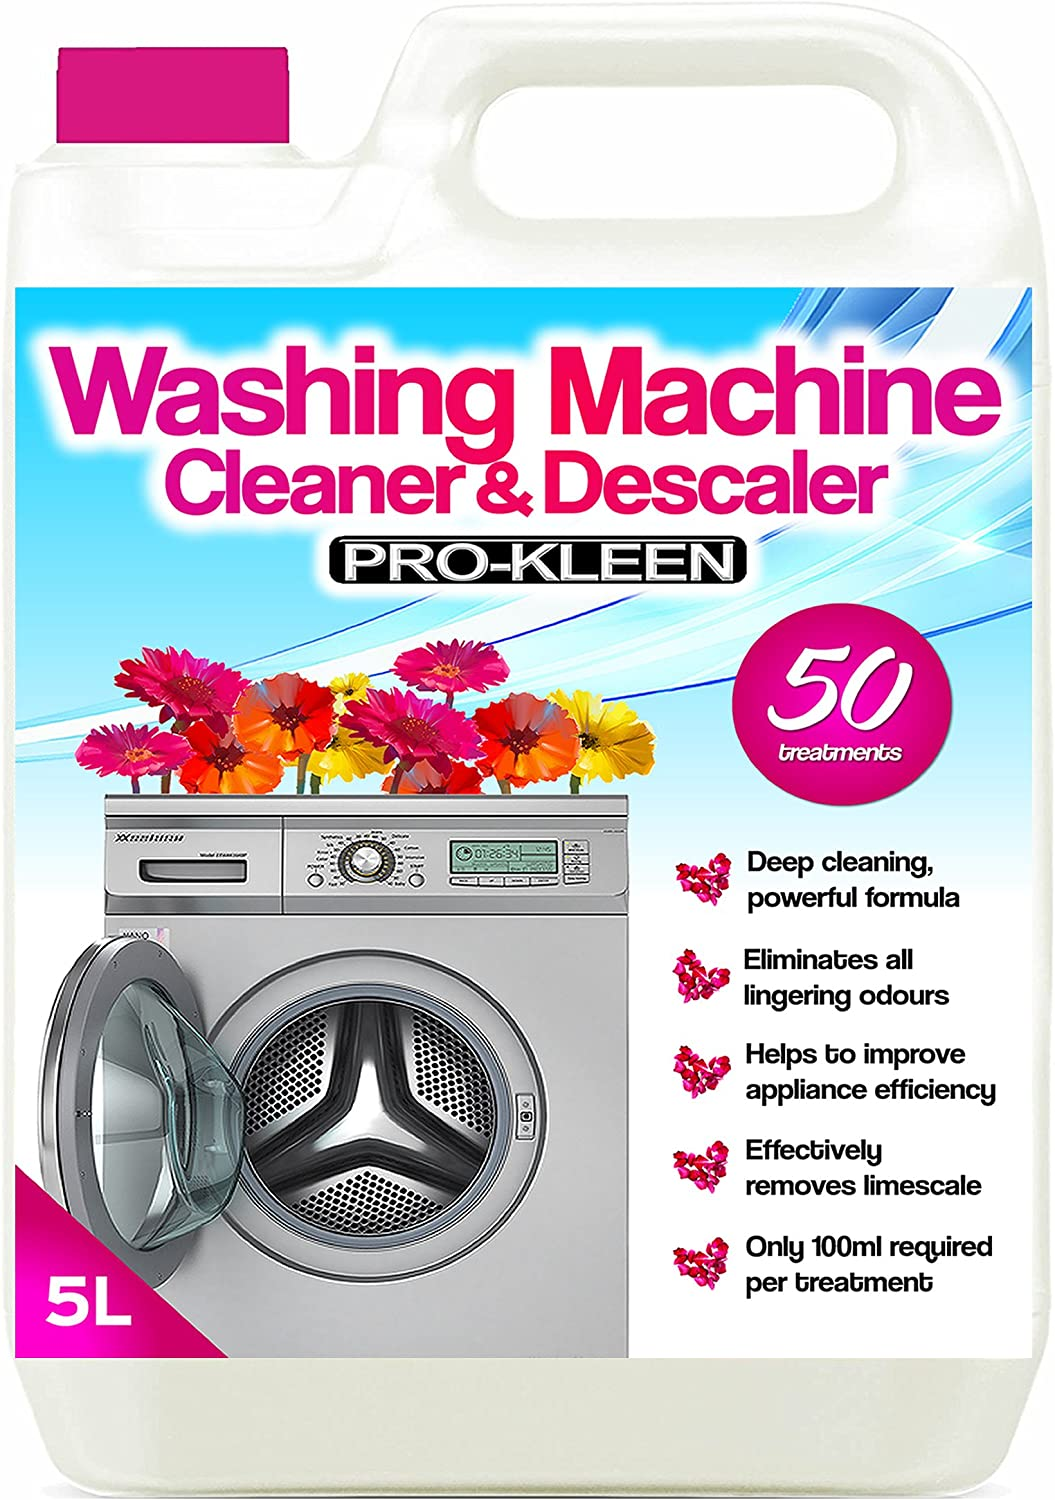 Pro-Kleen Washing Machine Cleaner and Descaler - 50 Treatments - Removes Smells Caused by Mould, Mildew & Damp & Grease (1, 5 Litre) 1 5 Litre